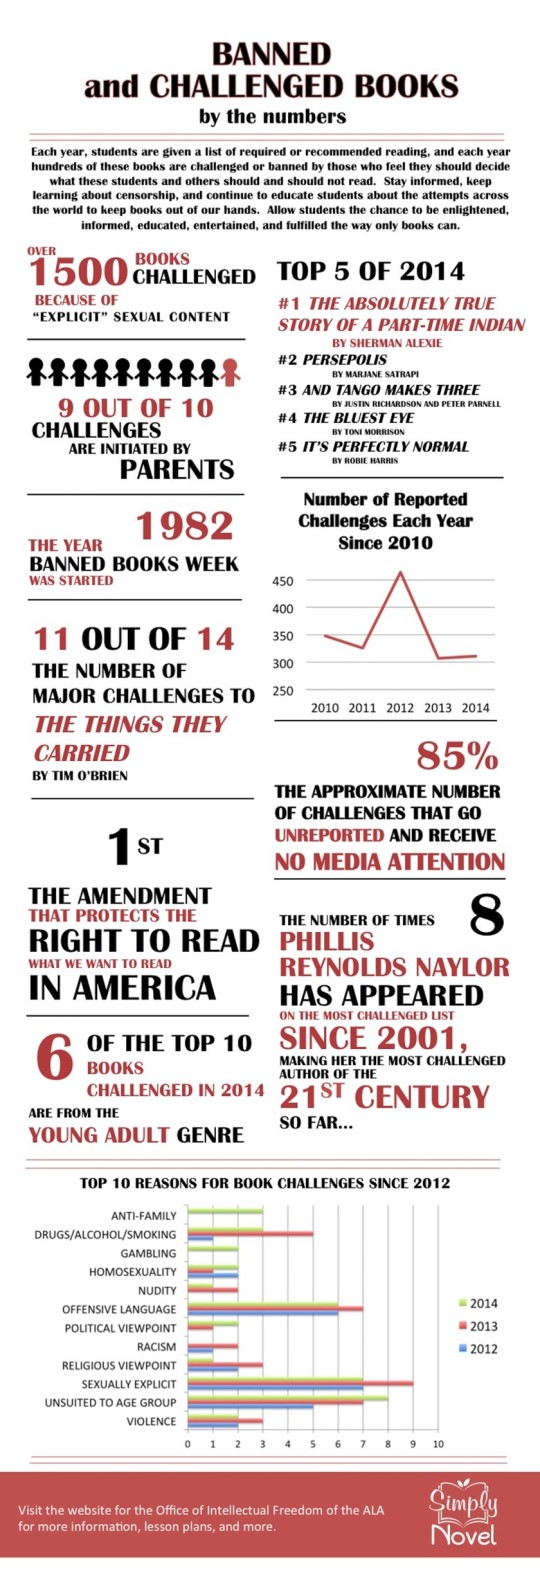 Banned and challenged books by the numbers #infographic